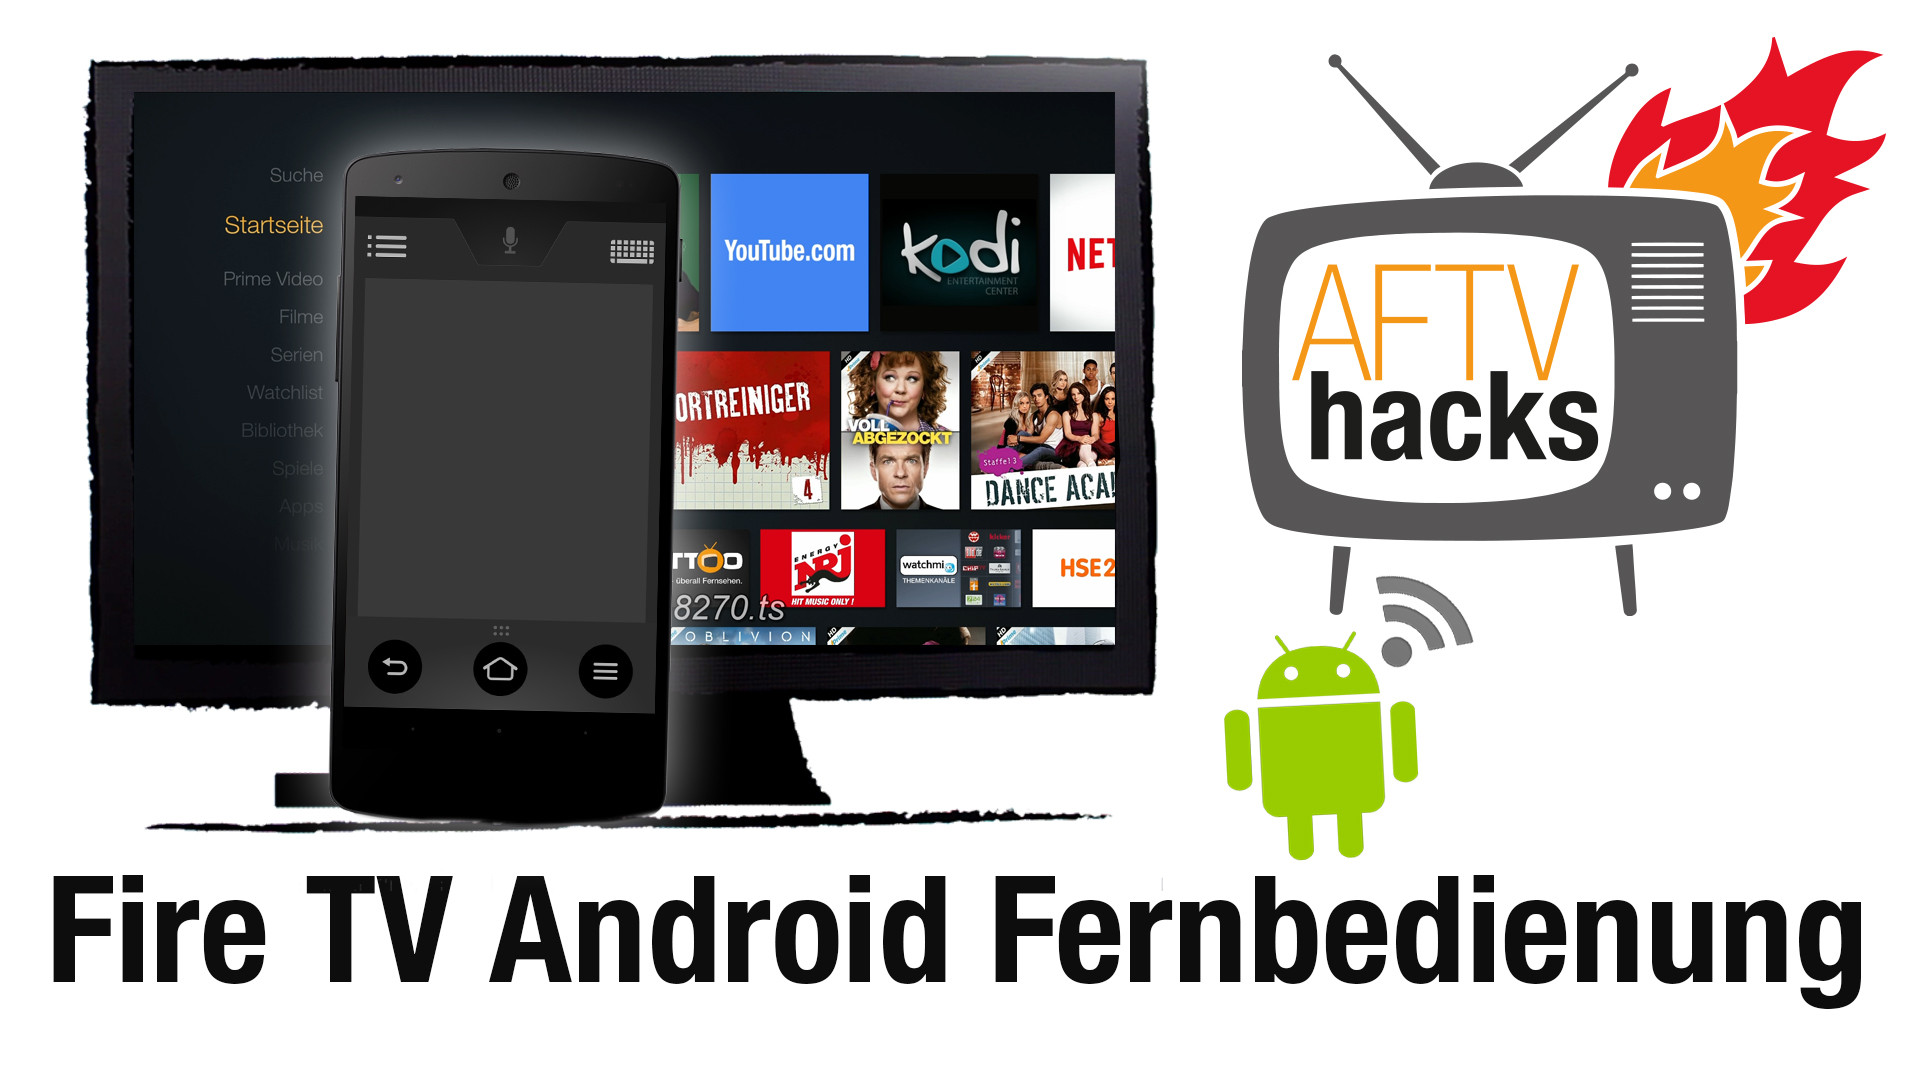 Android Amazon Fire TV Fernebedienung App